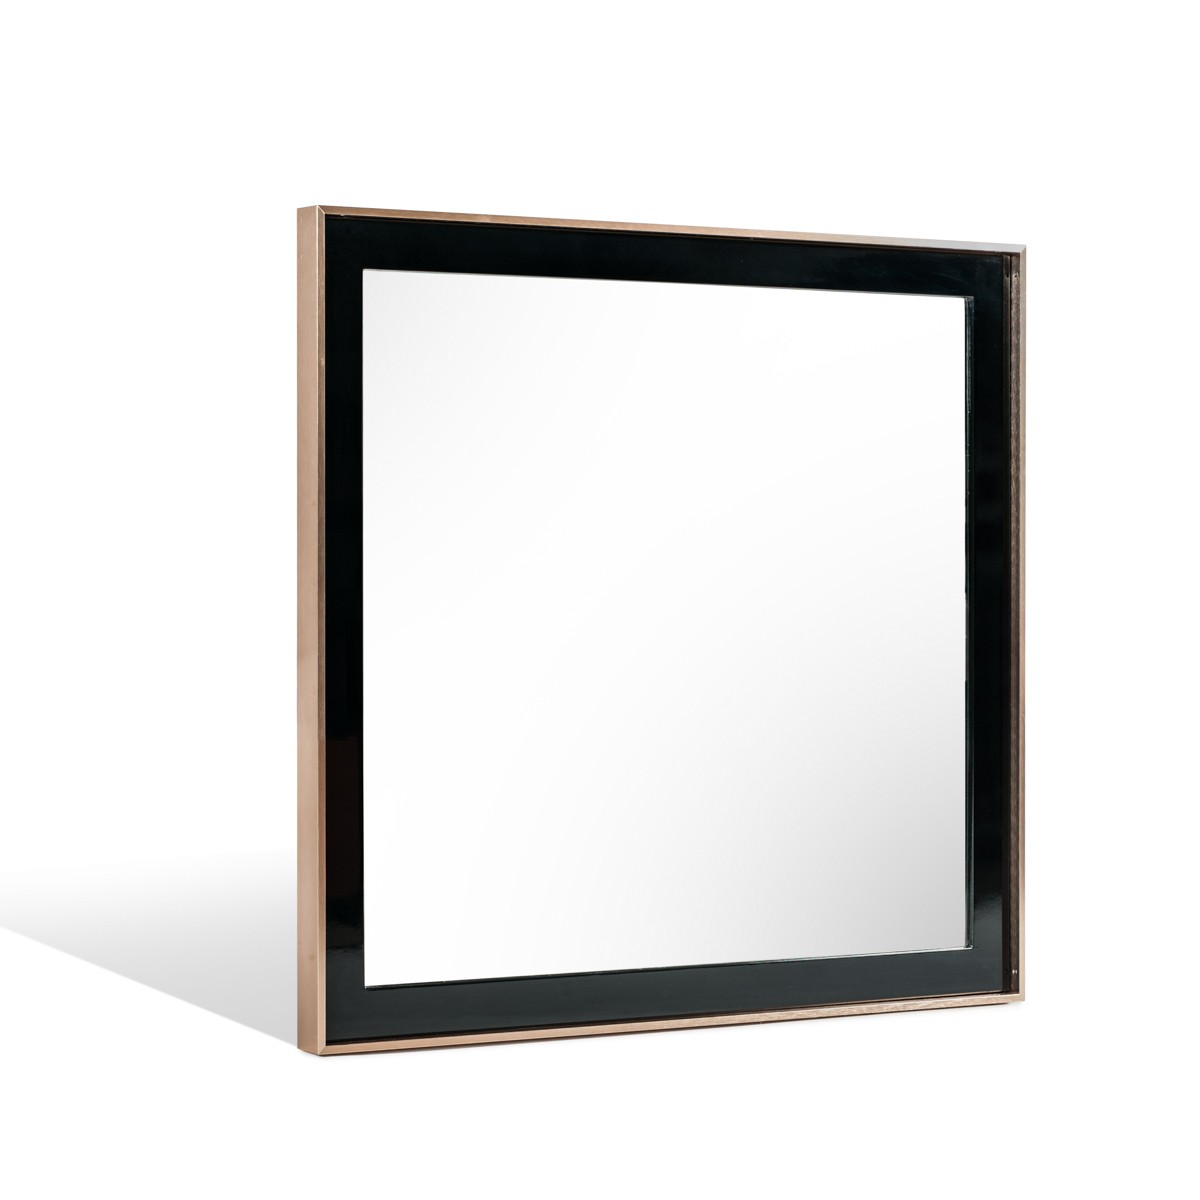 Nova Domus Cartier Modern Black & Brushed Bronze Mirror